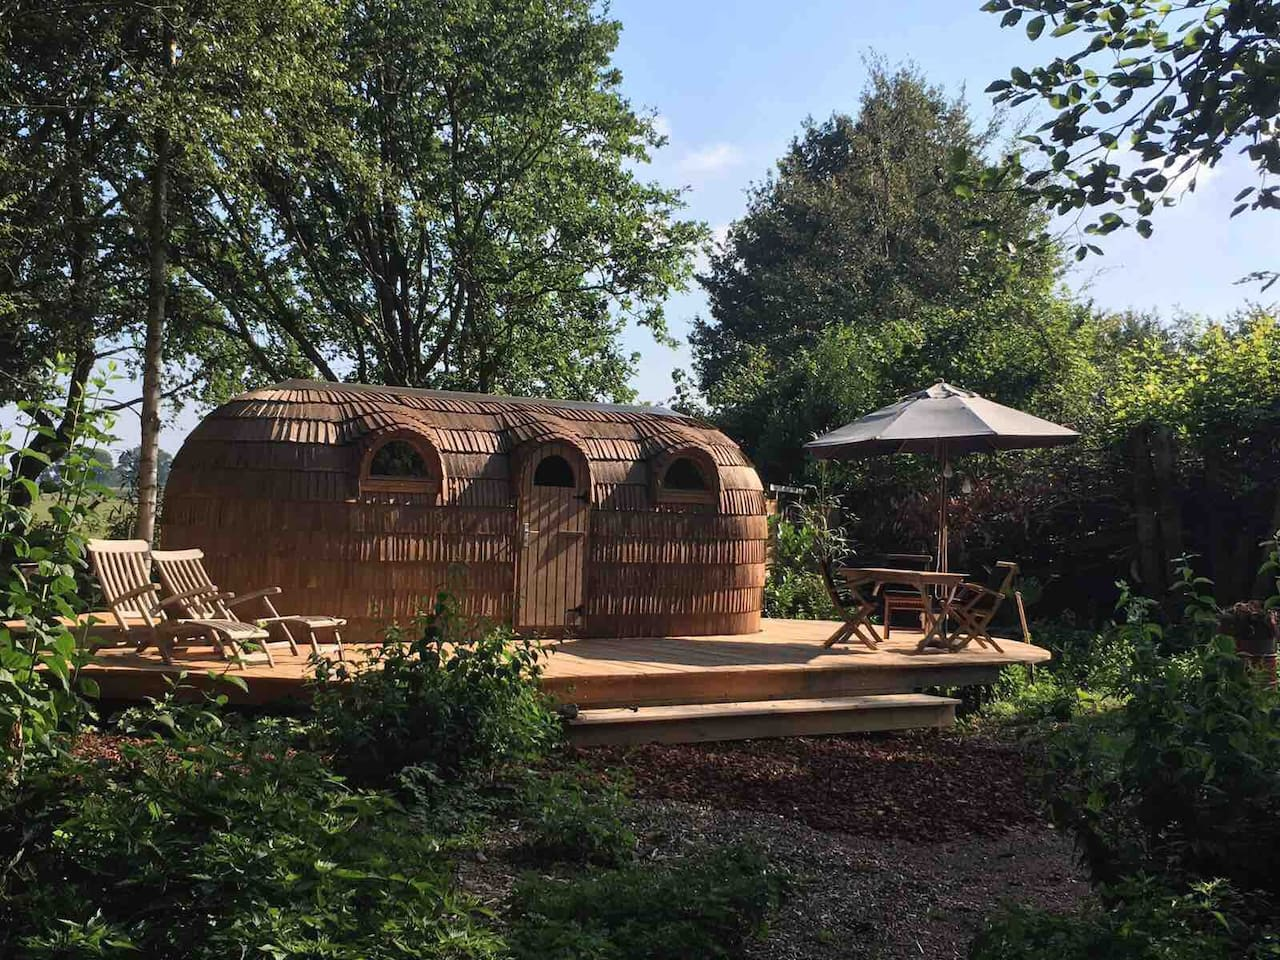 """Nieuw in Nederland """"WOOD-HOUSE + SAUNA back to nature, relaxing experience"""